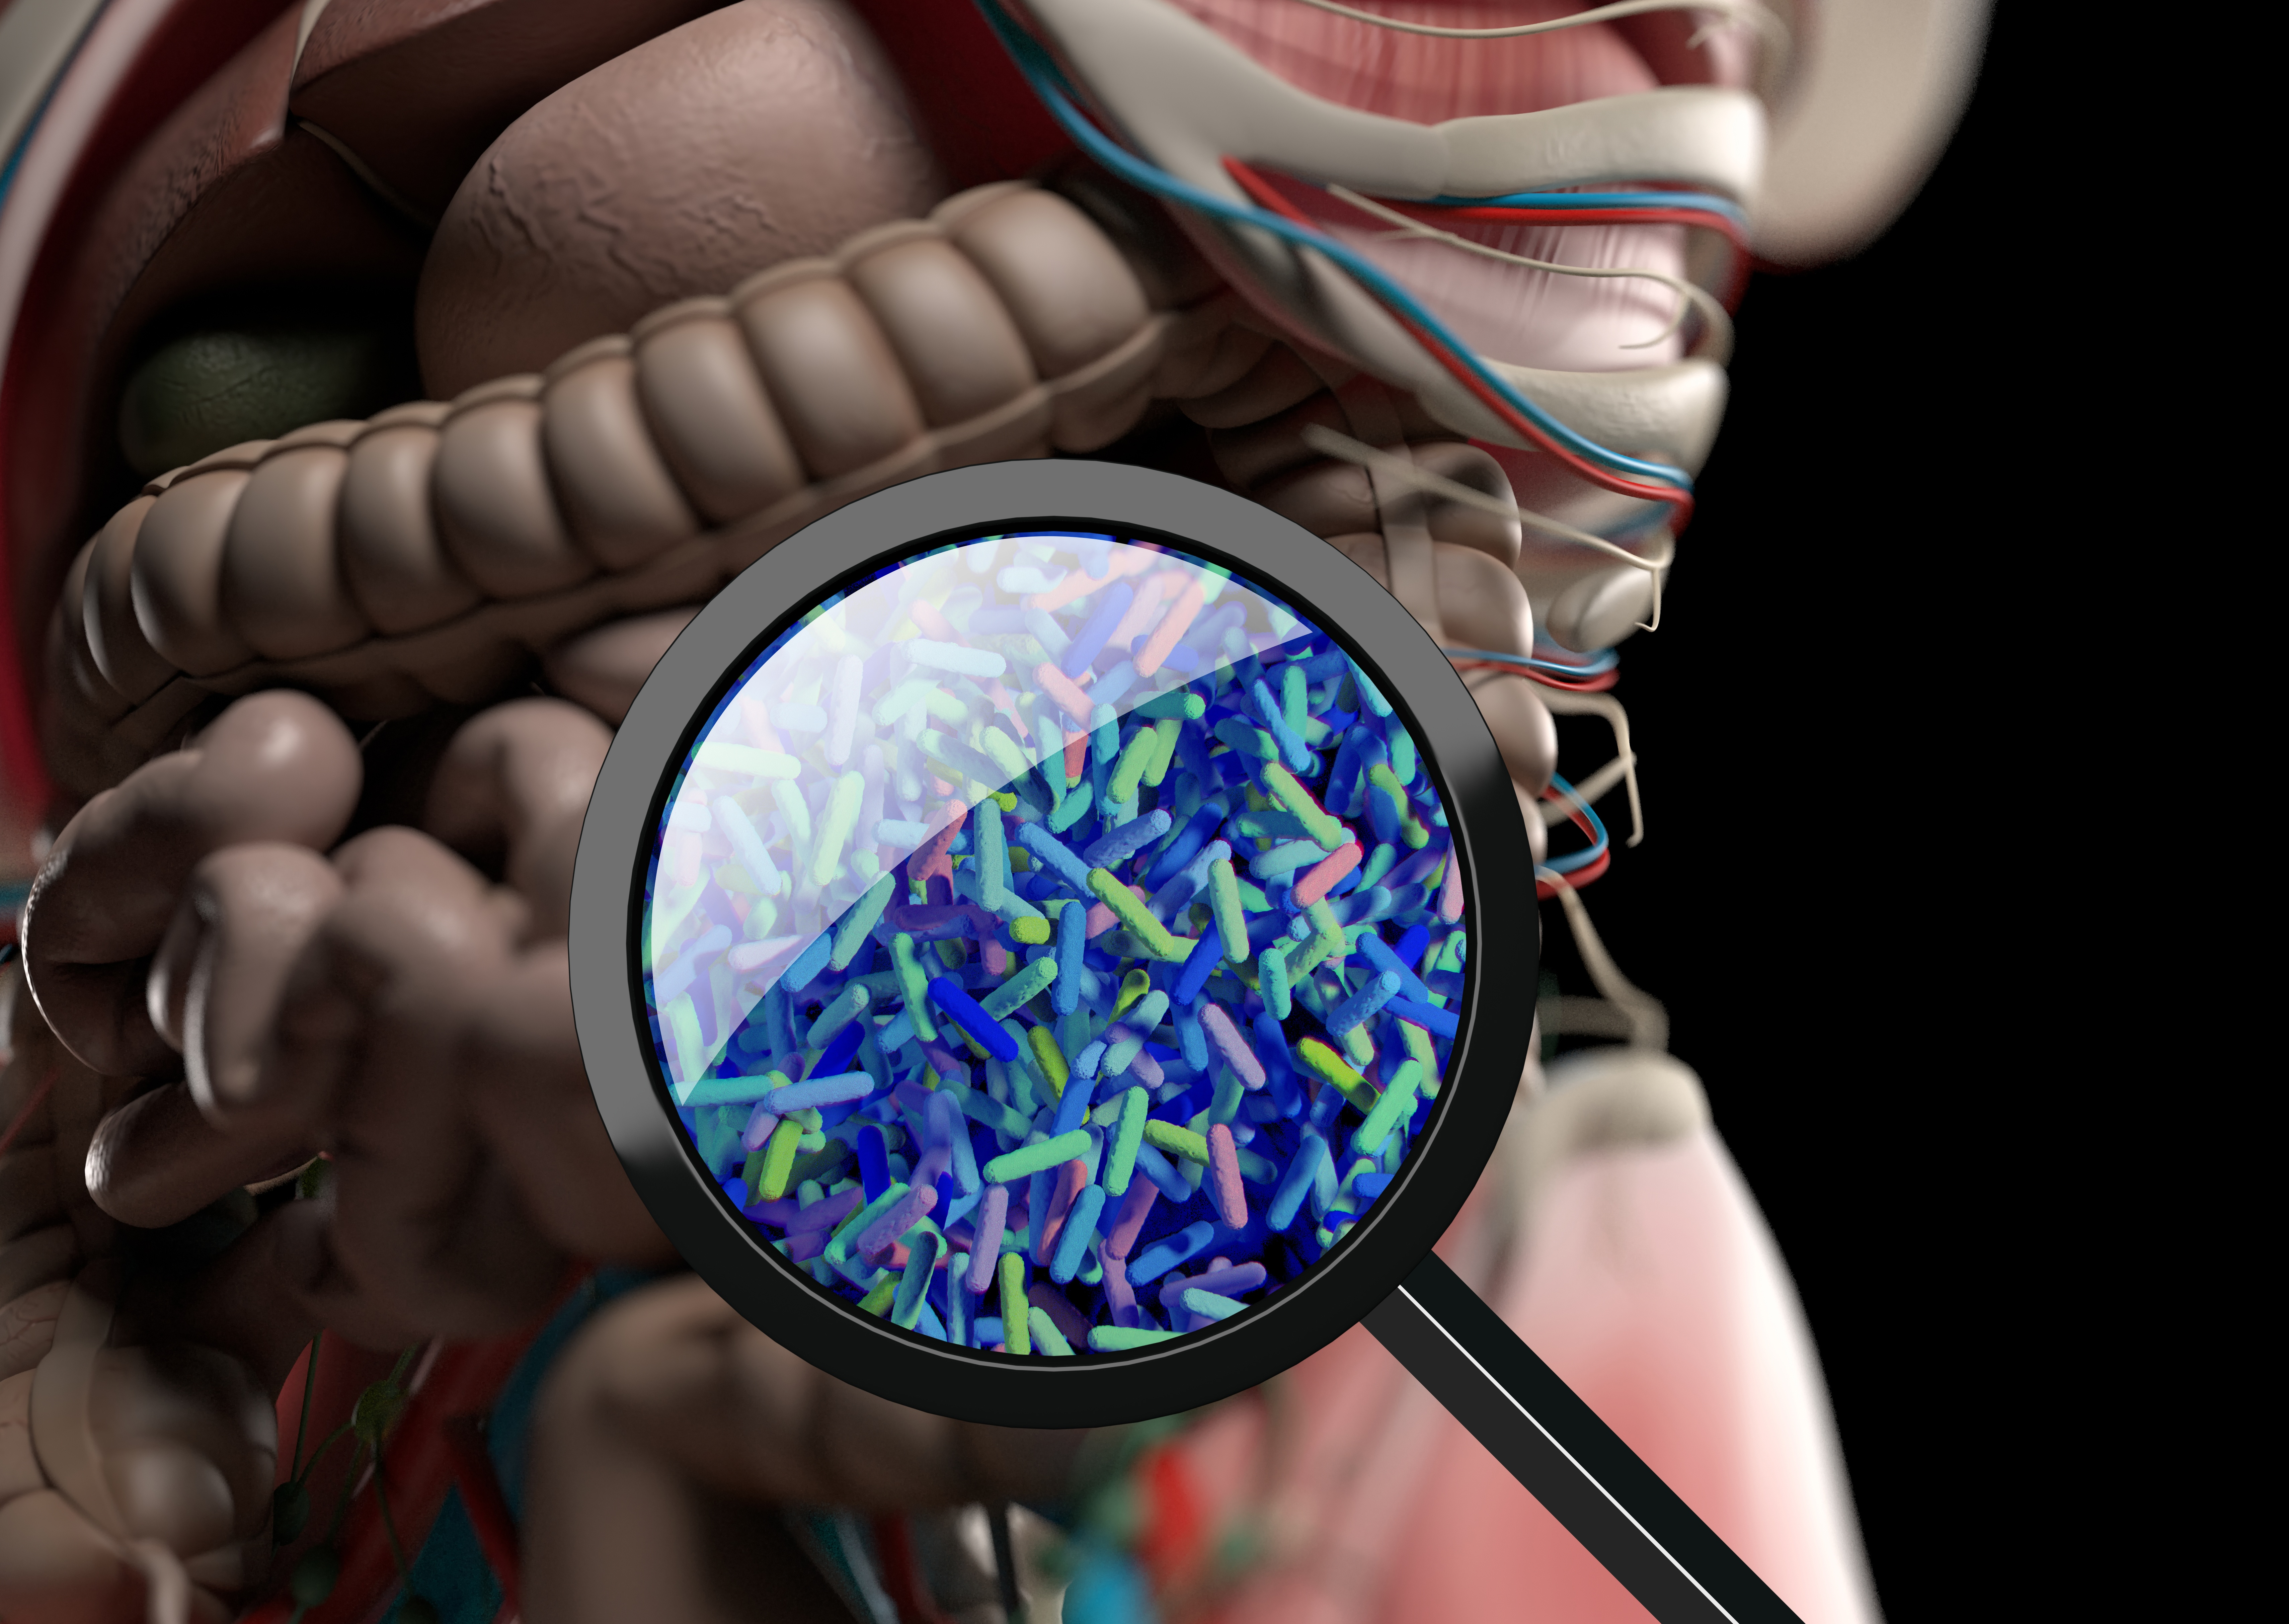 The Role of Gut Microbiota and Implications for IBD